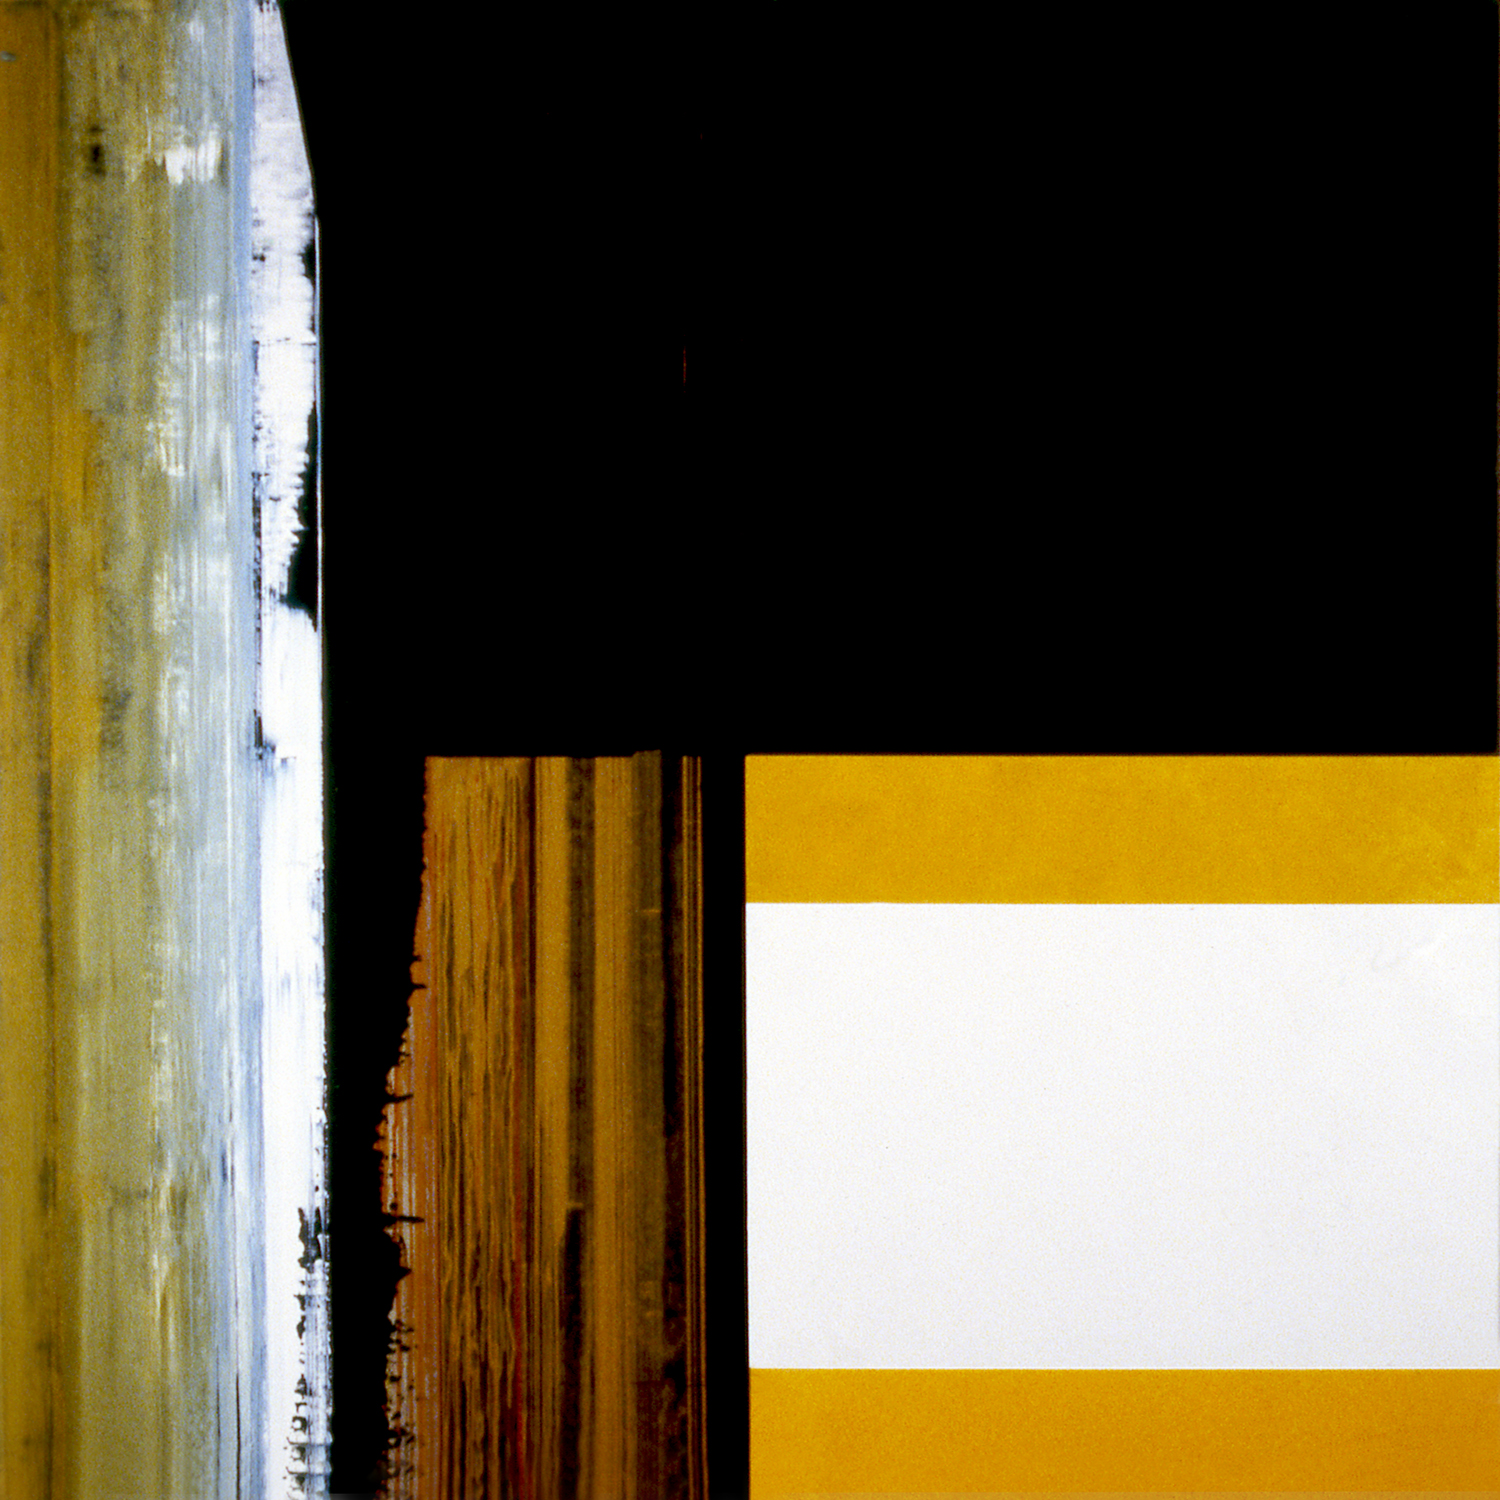 Janus XXXII, 1987, Acrylic on canvas over panels, 72 x 72 inches.